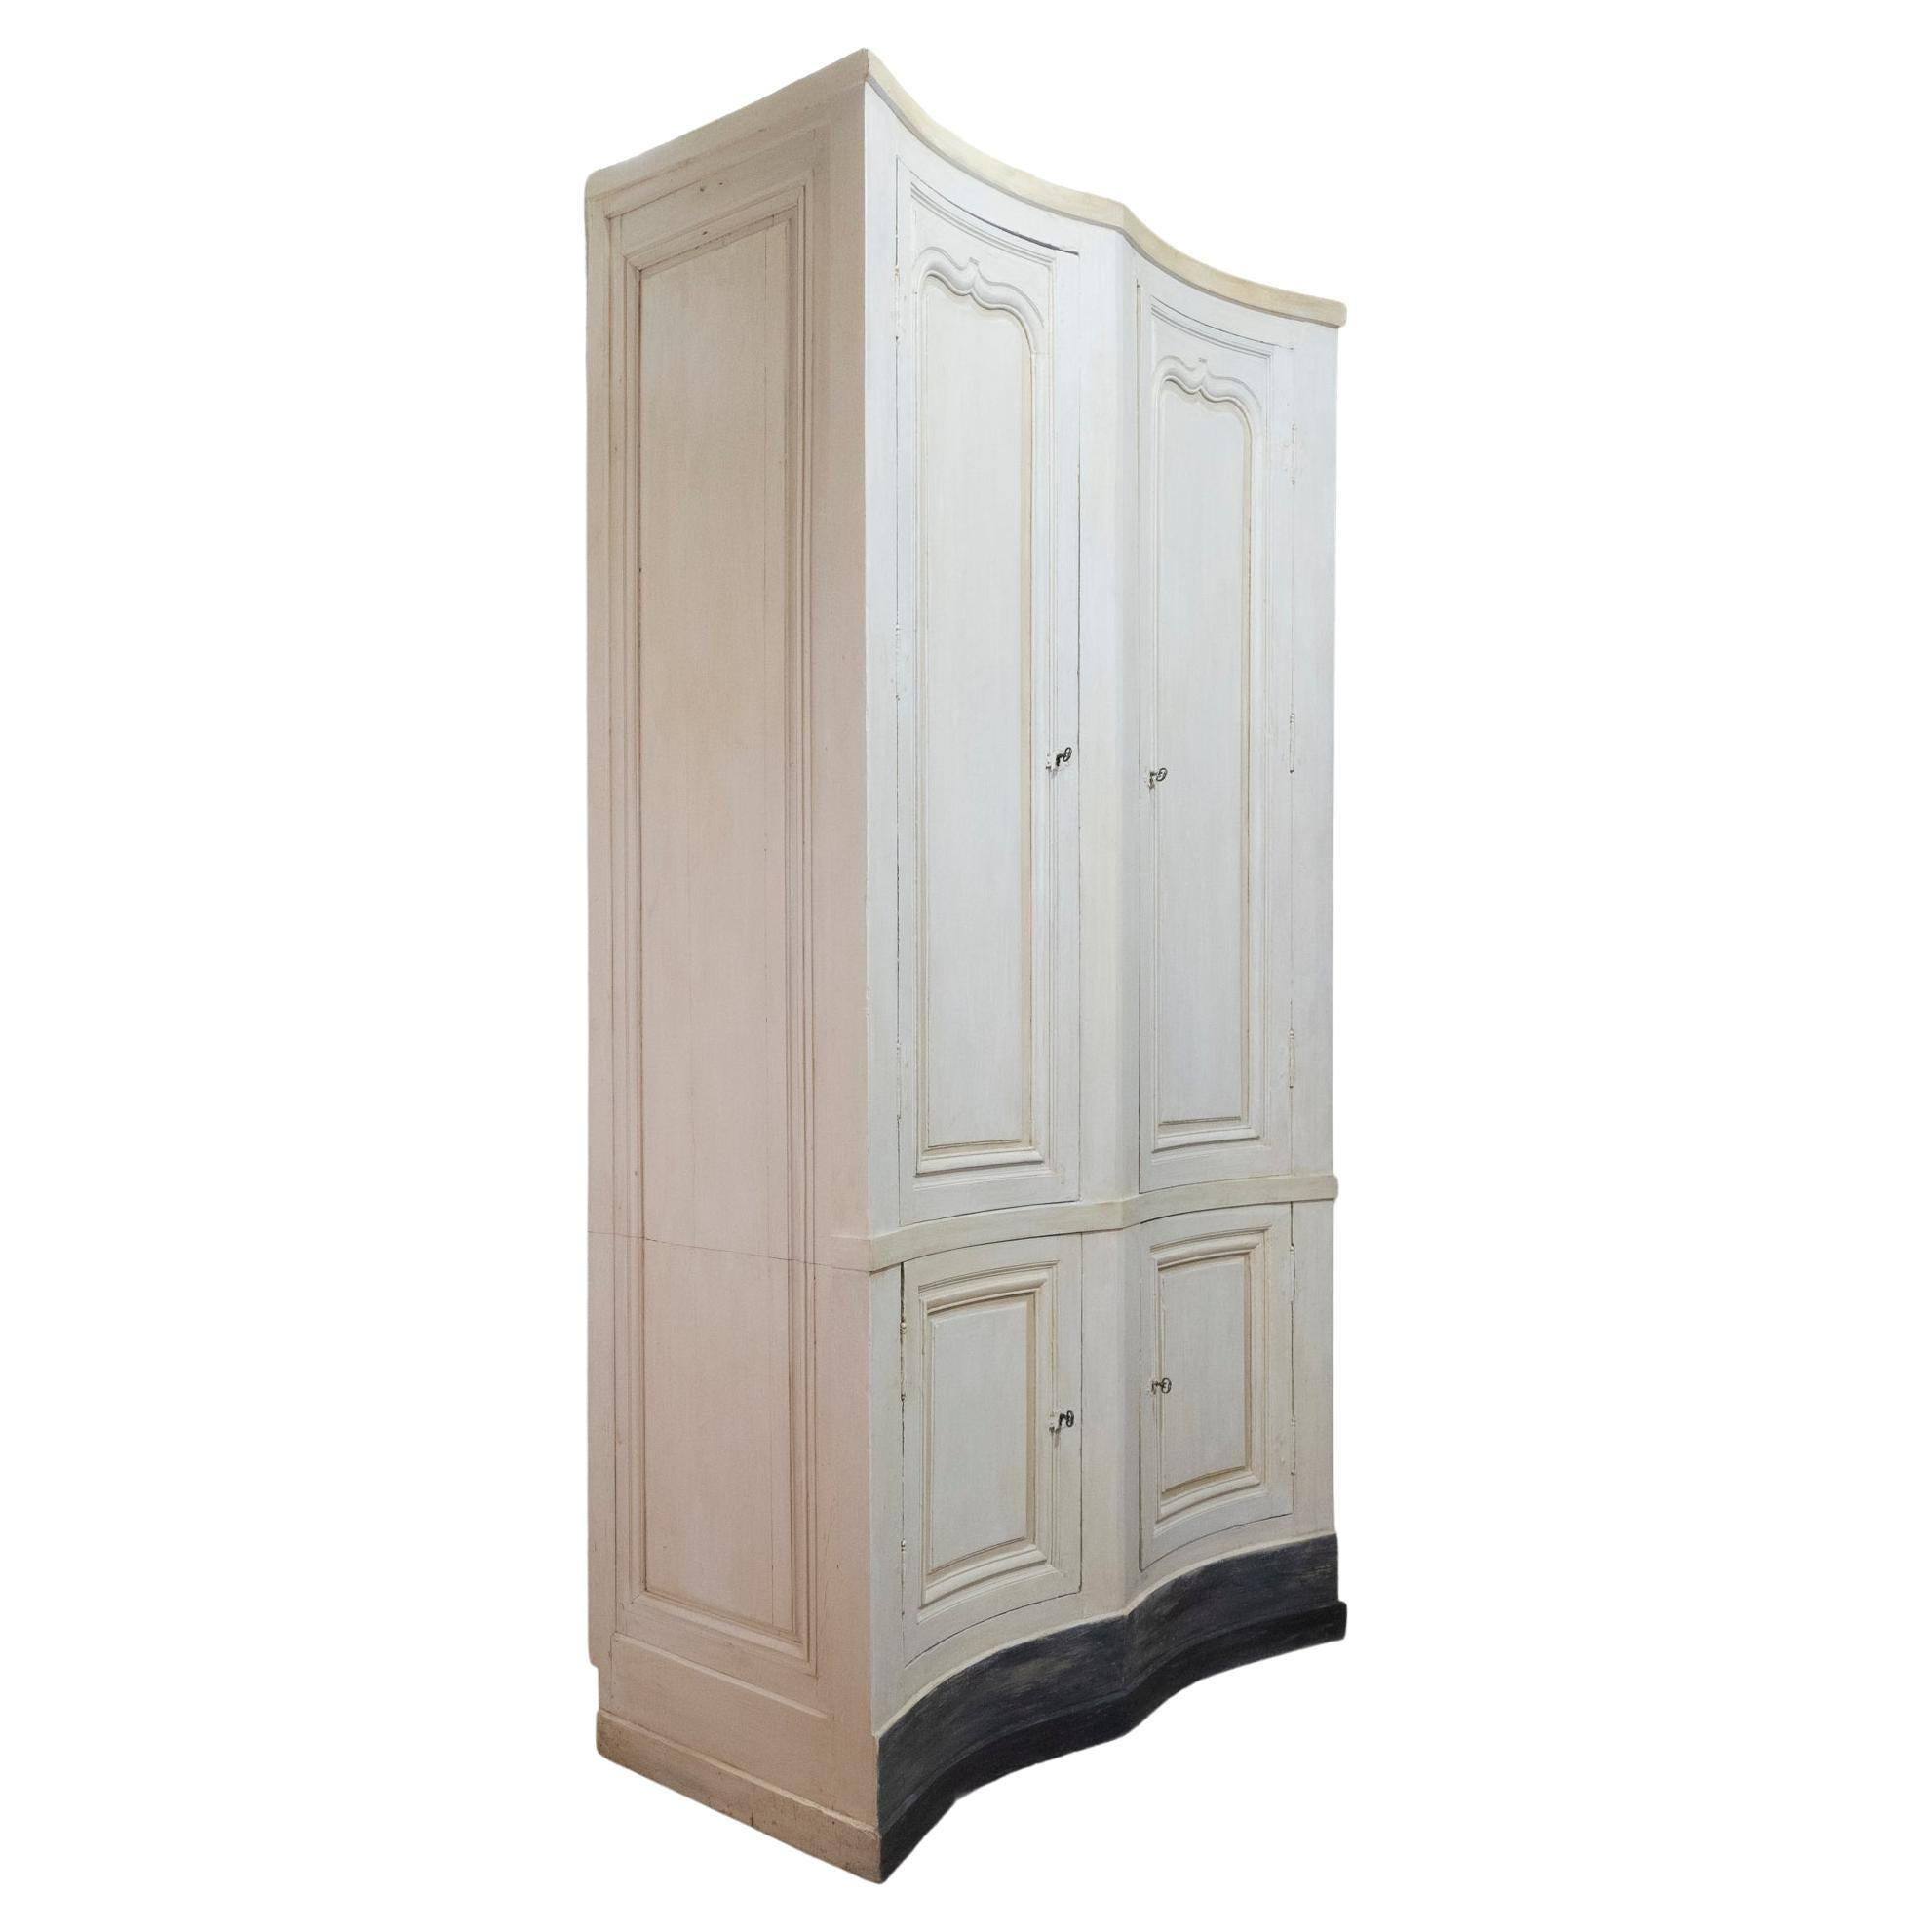 Tall French Mid 19th Century Serpentine Shaped Painted Cupboard, Armoire